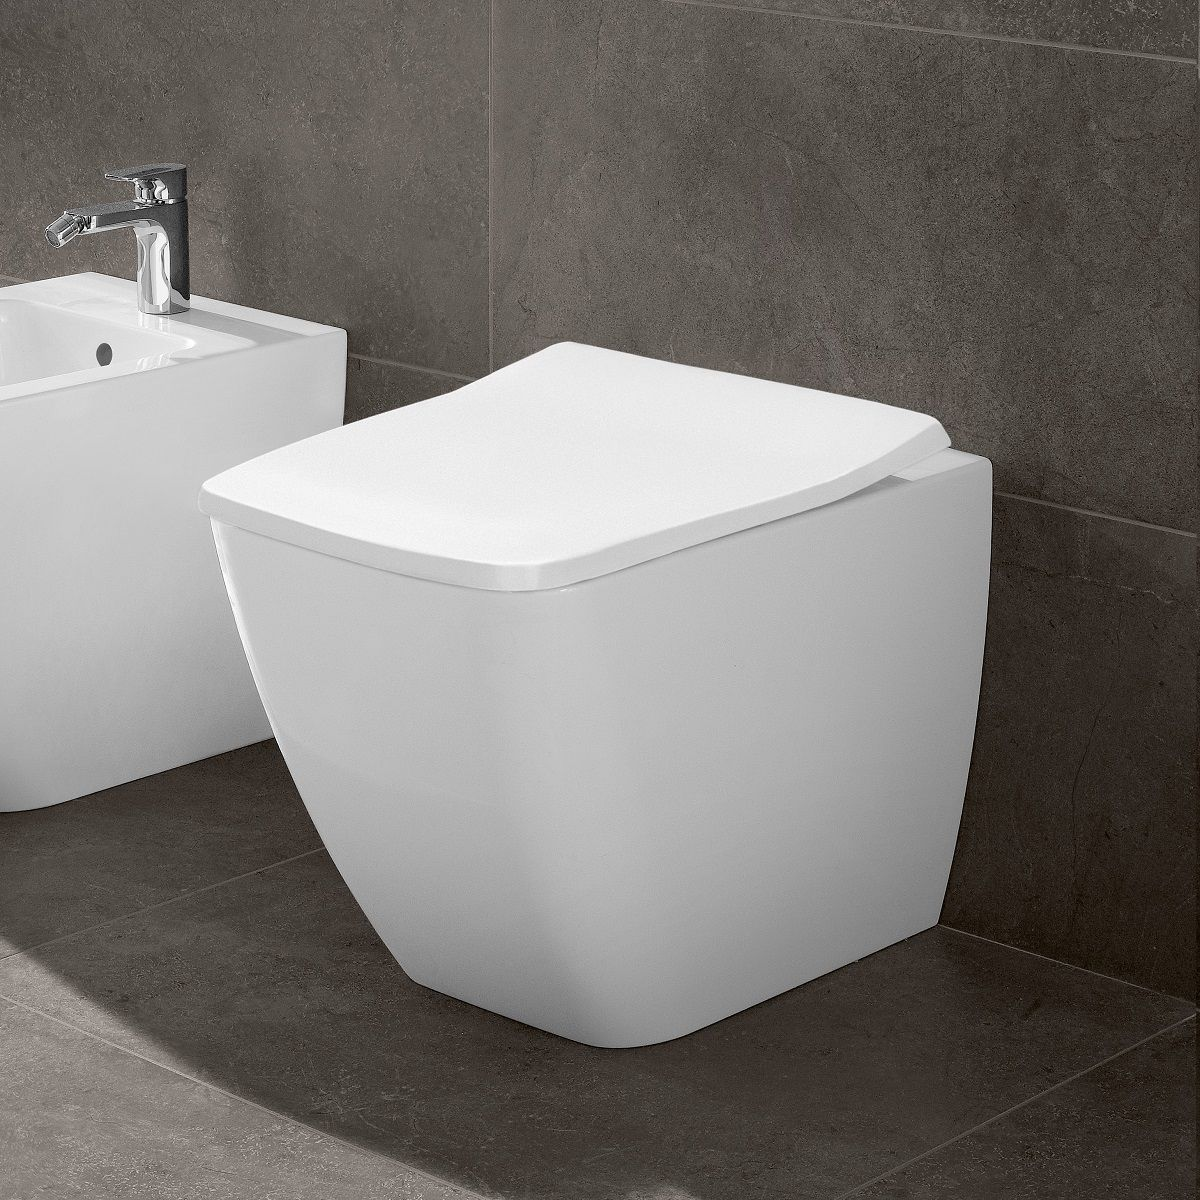 villeroy boch venticello rimless back to wall toilet bathrooms direct yorkshire. Black Bedroom Furniture Sets. Home Design Ideas